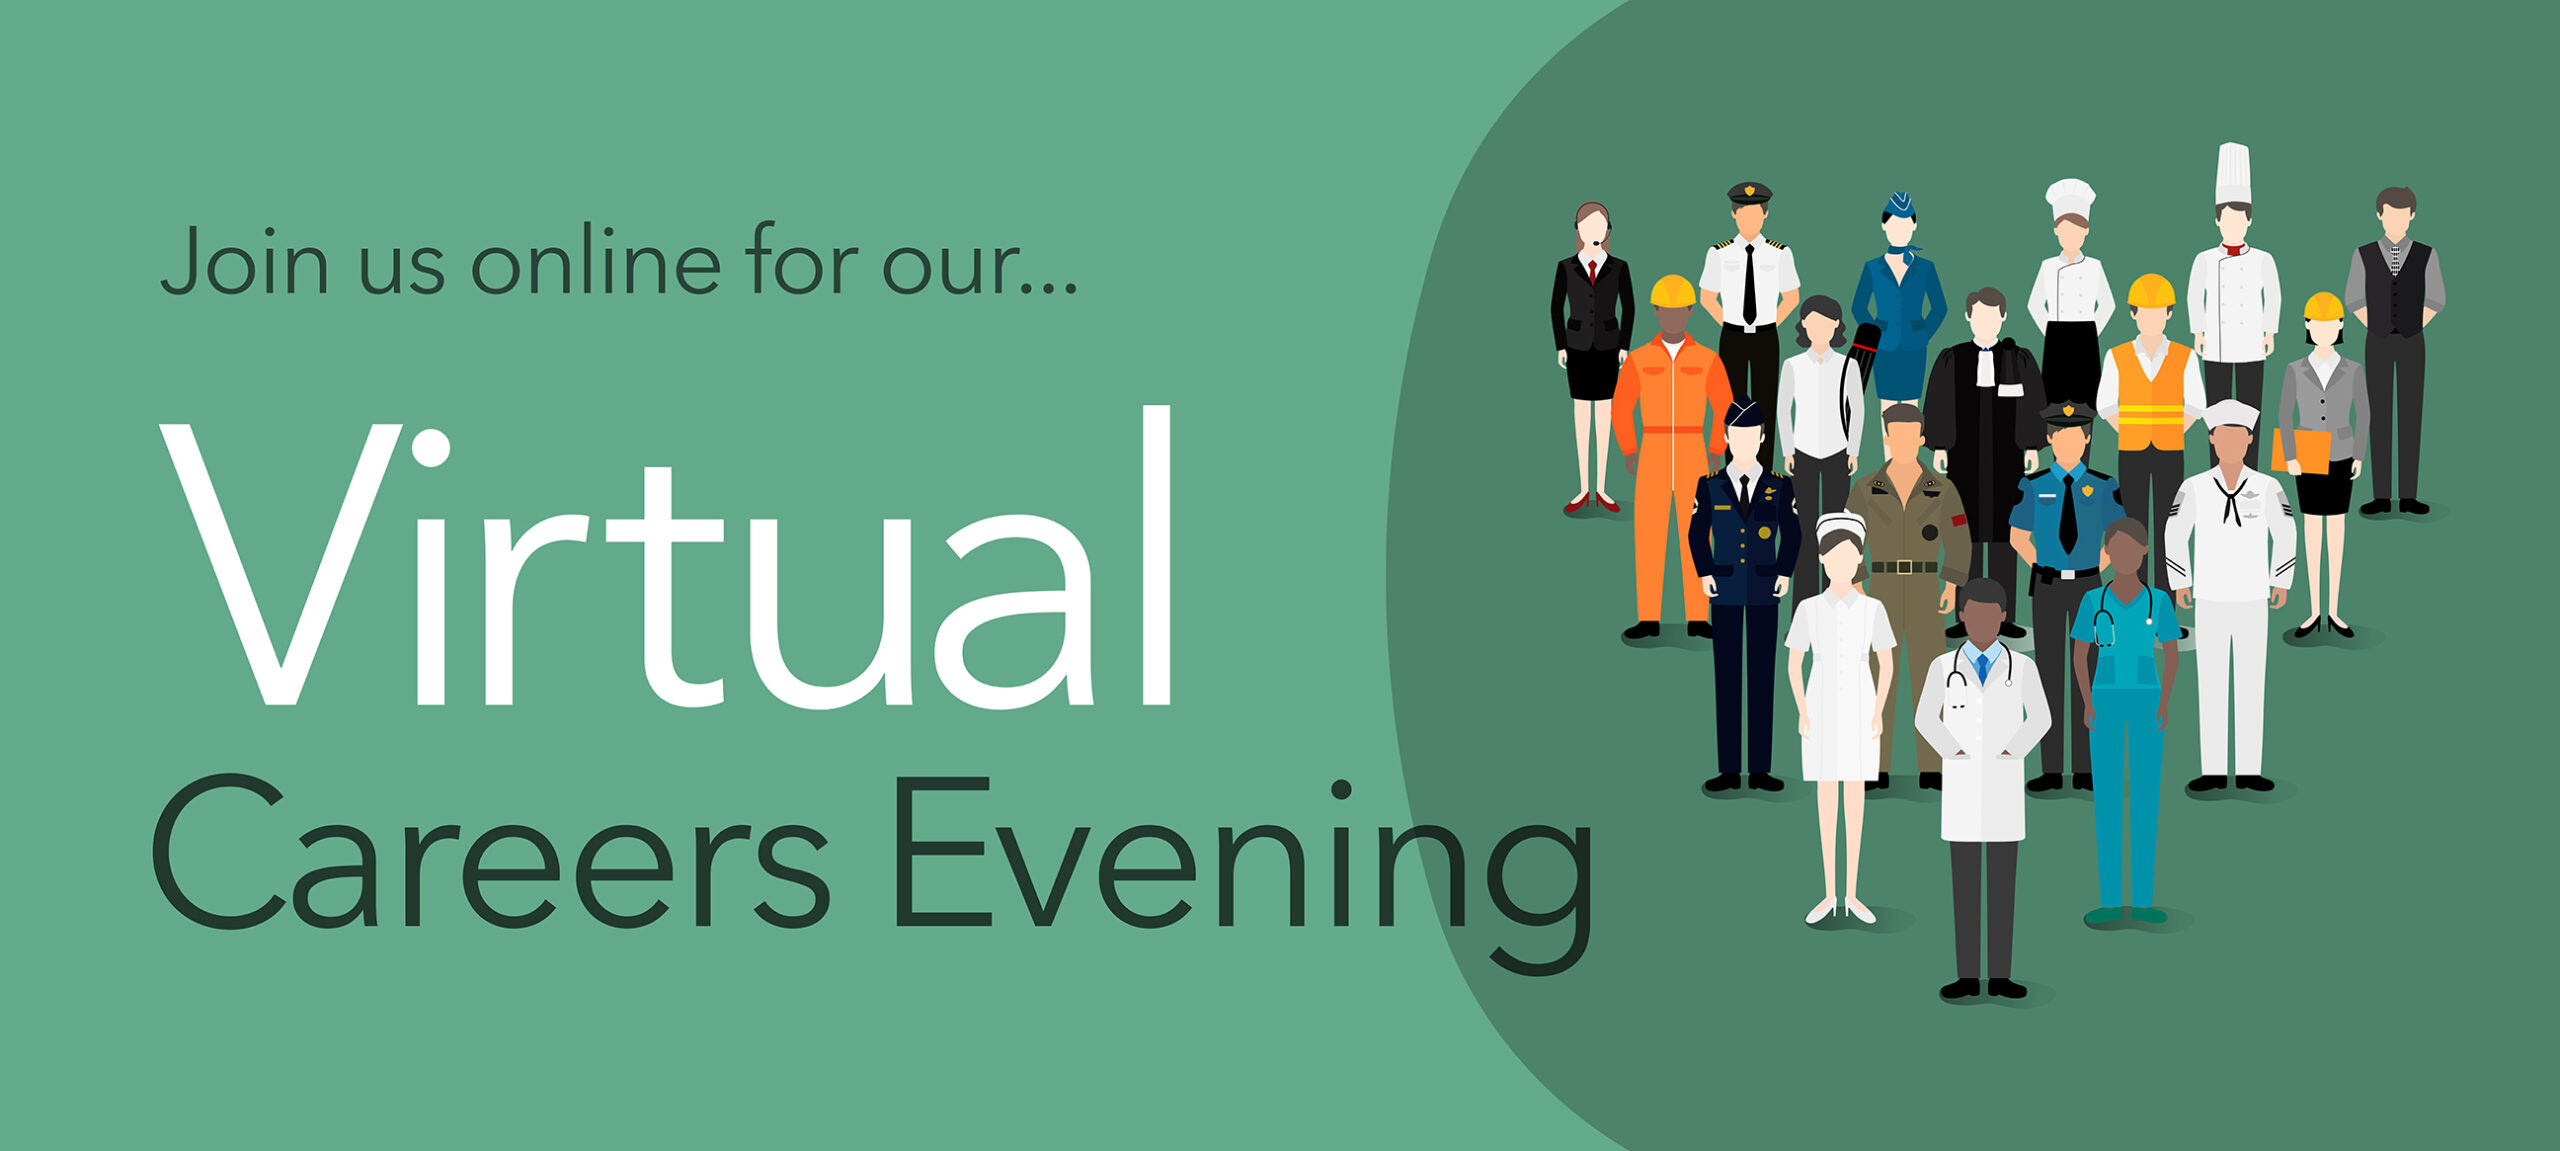 Virtual Careers Evening 2020